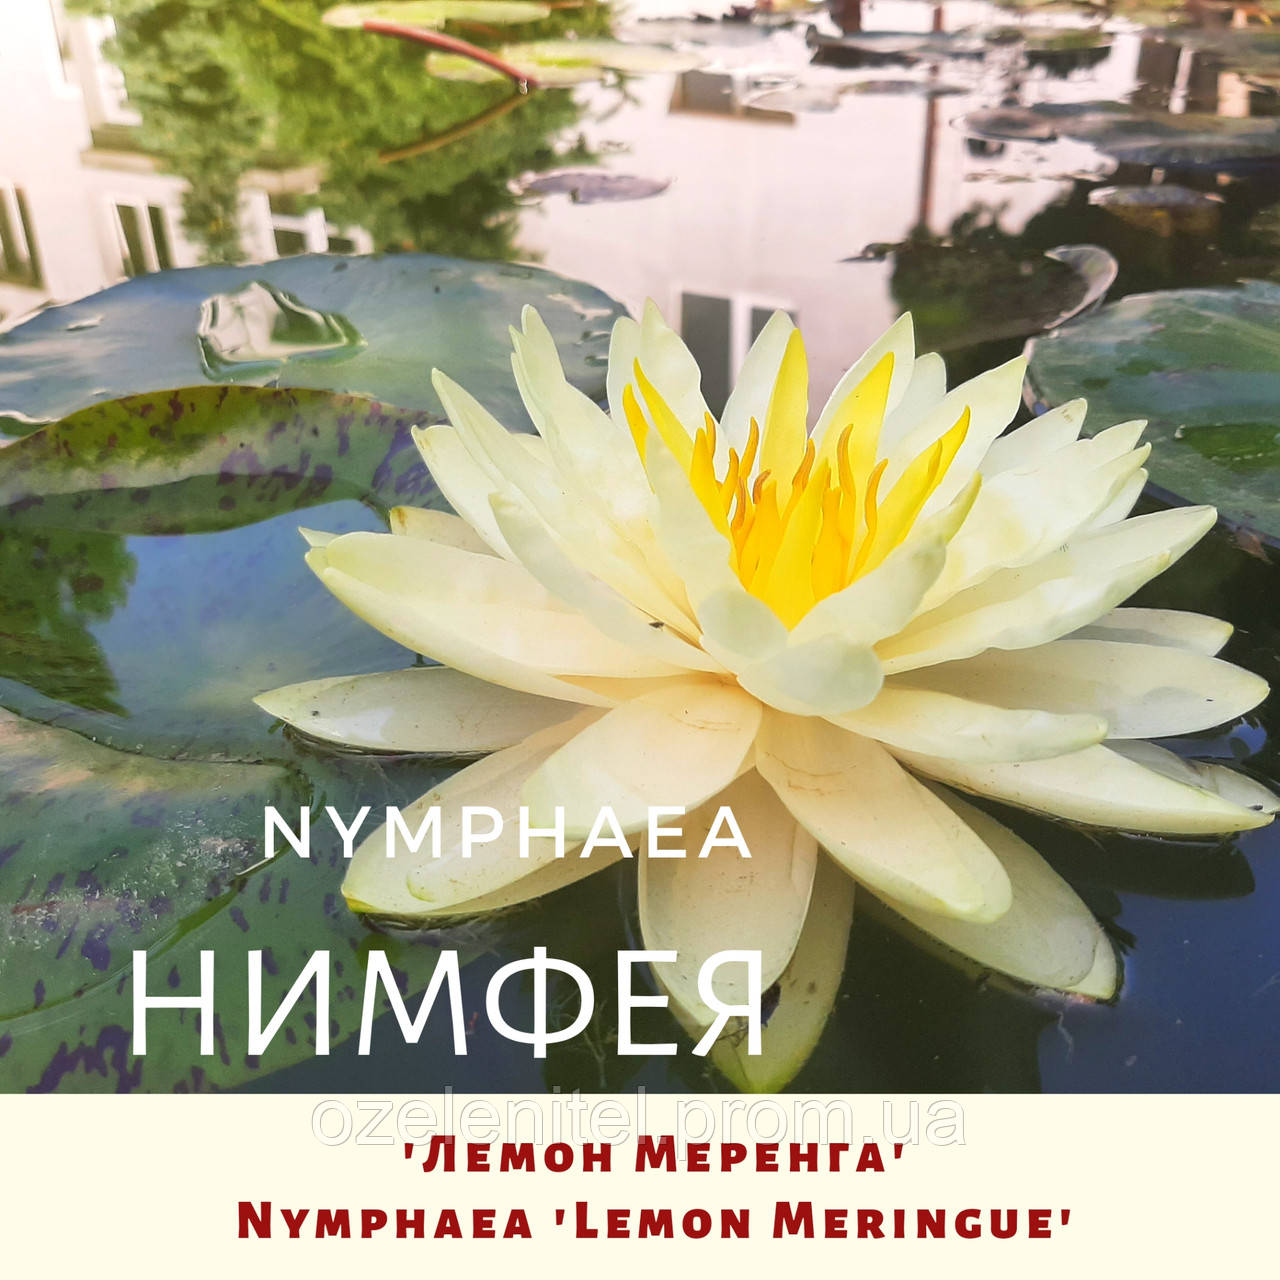 Німфея 'Лемон Меренга'/ Нимфея 'Лемон Меренга'/ Nymphaea 'Lemon Meringue'